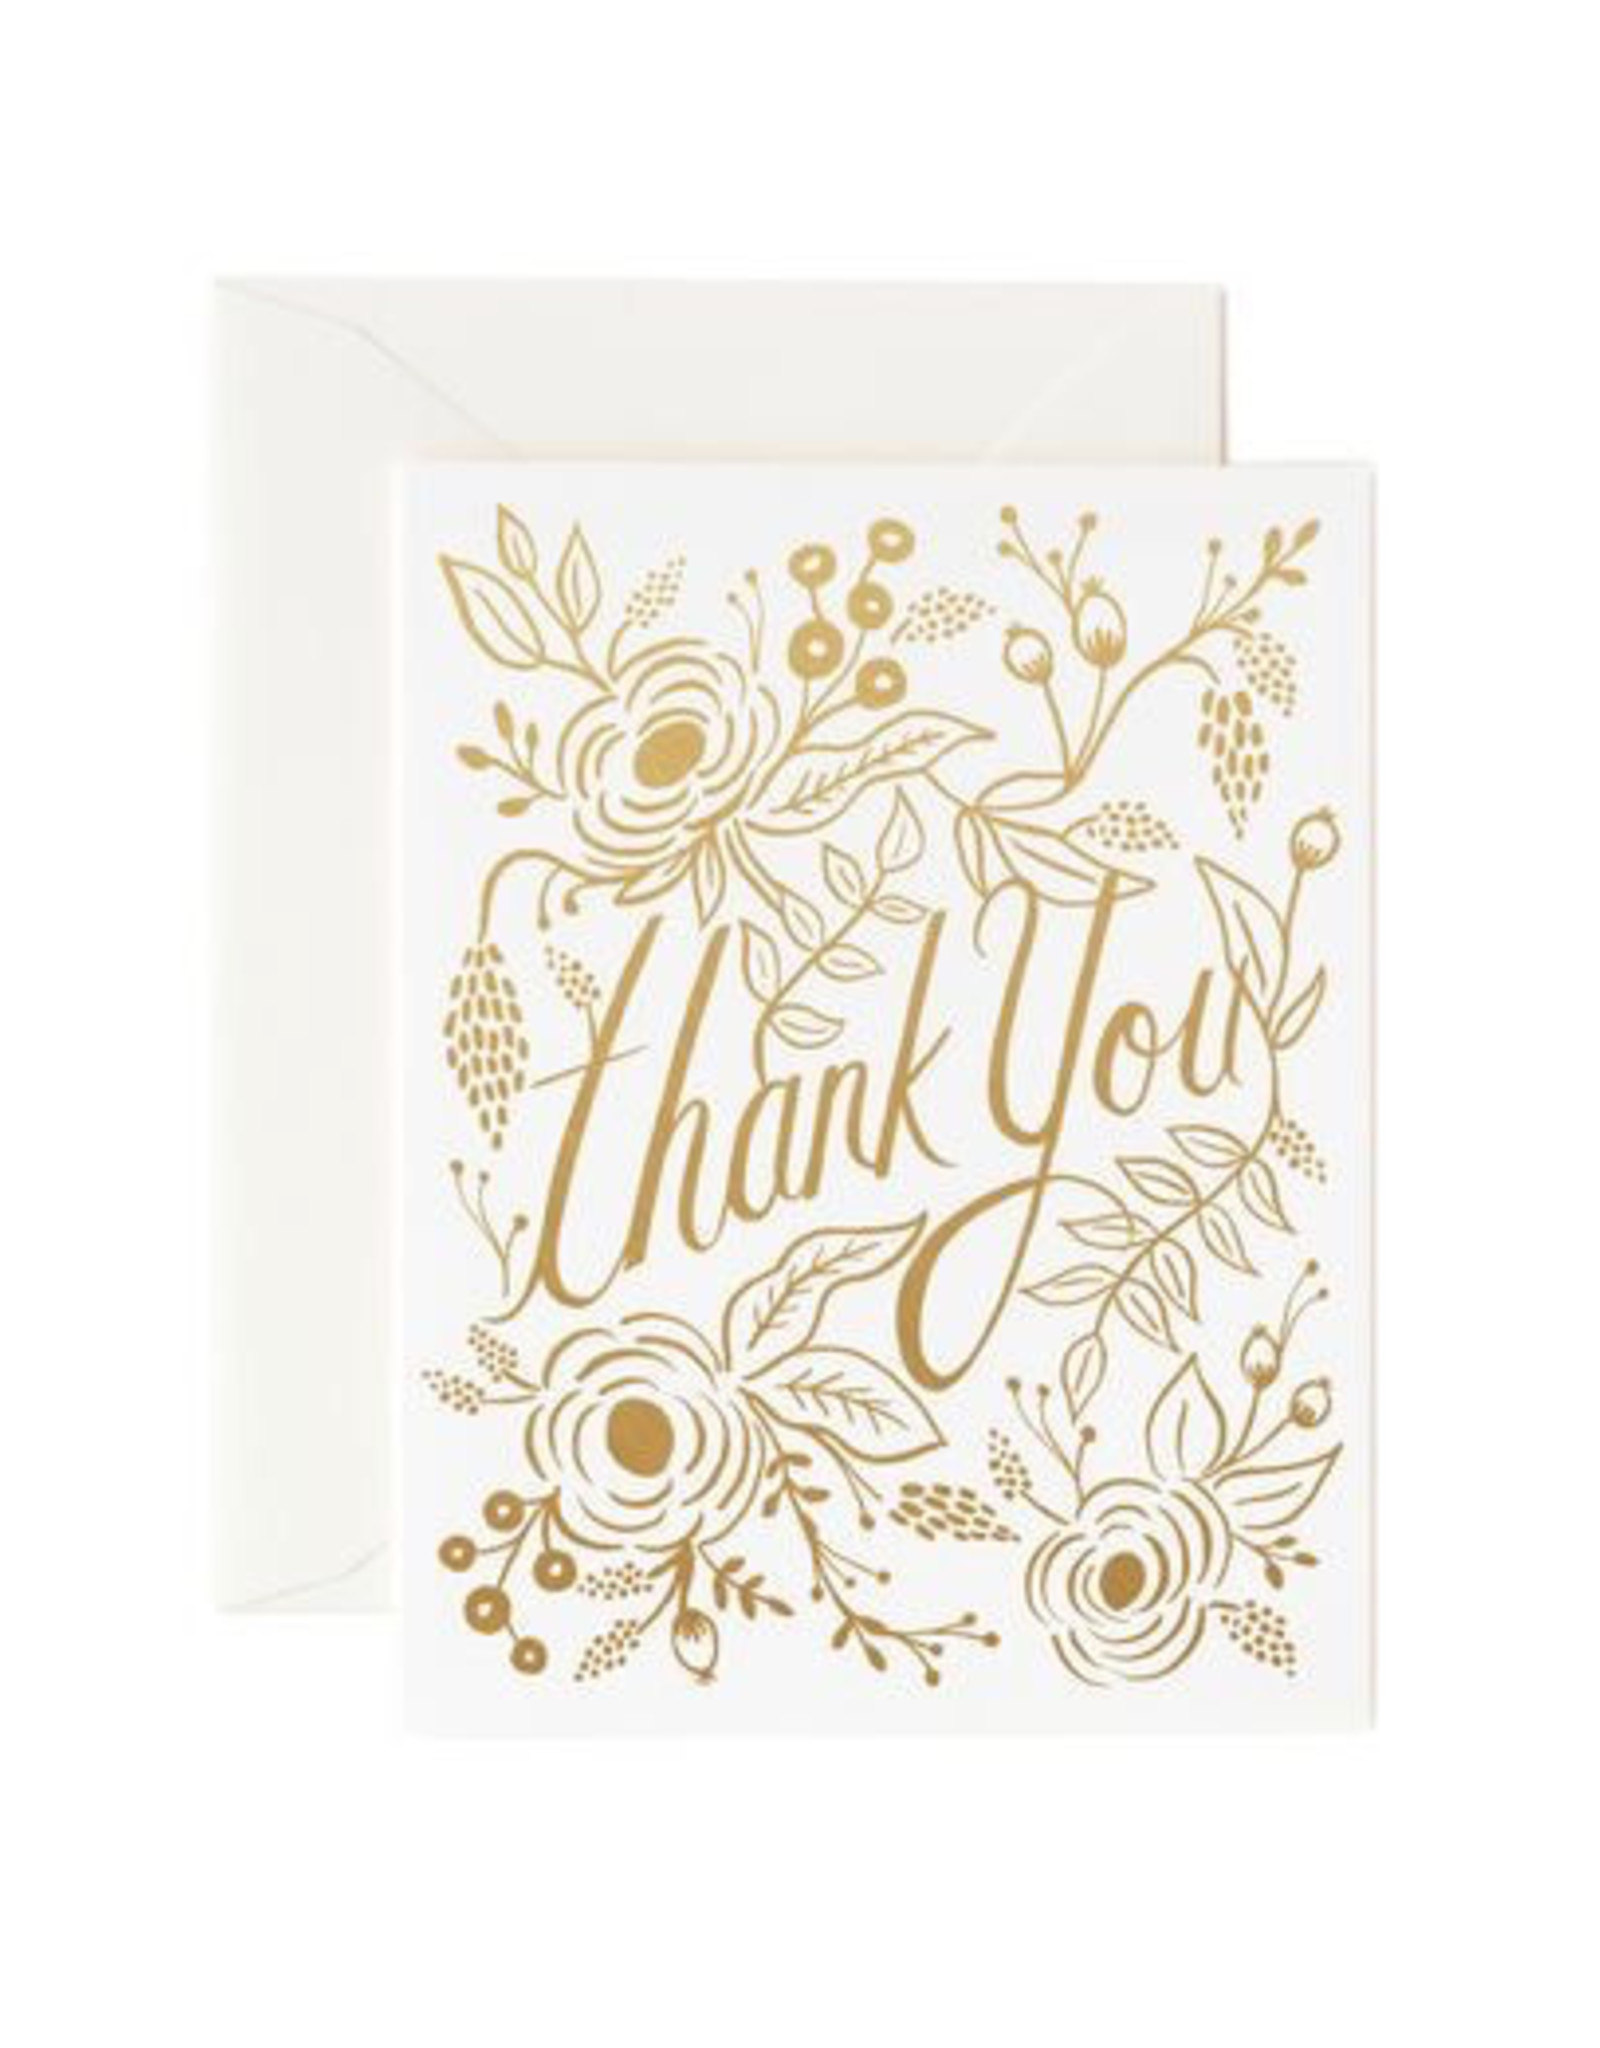 Boxed Set of Marion Thank You Cards